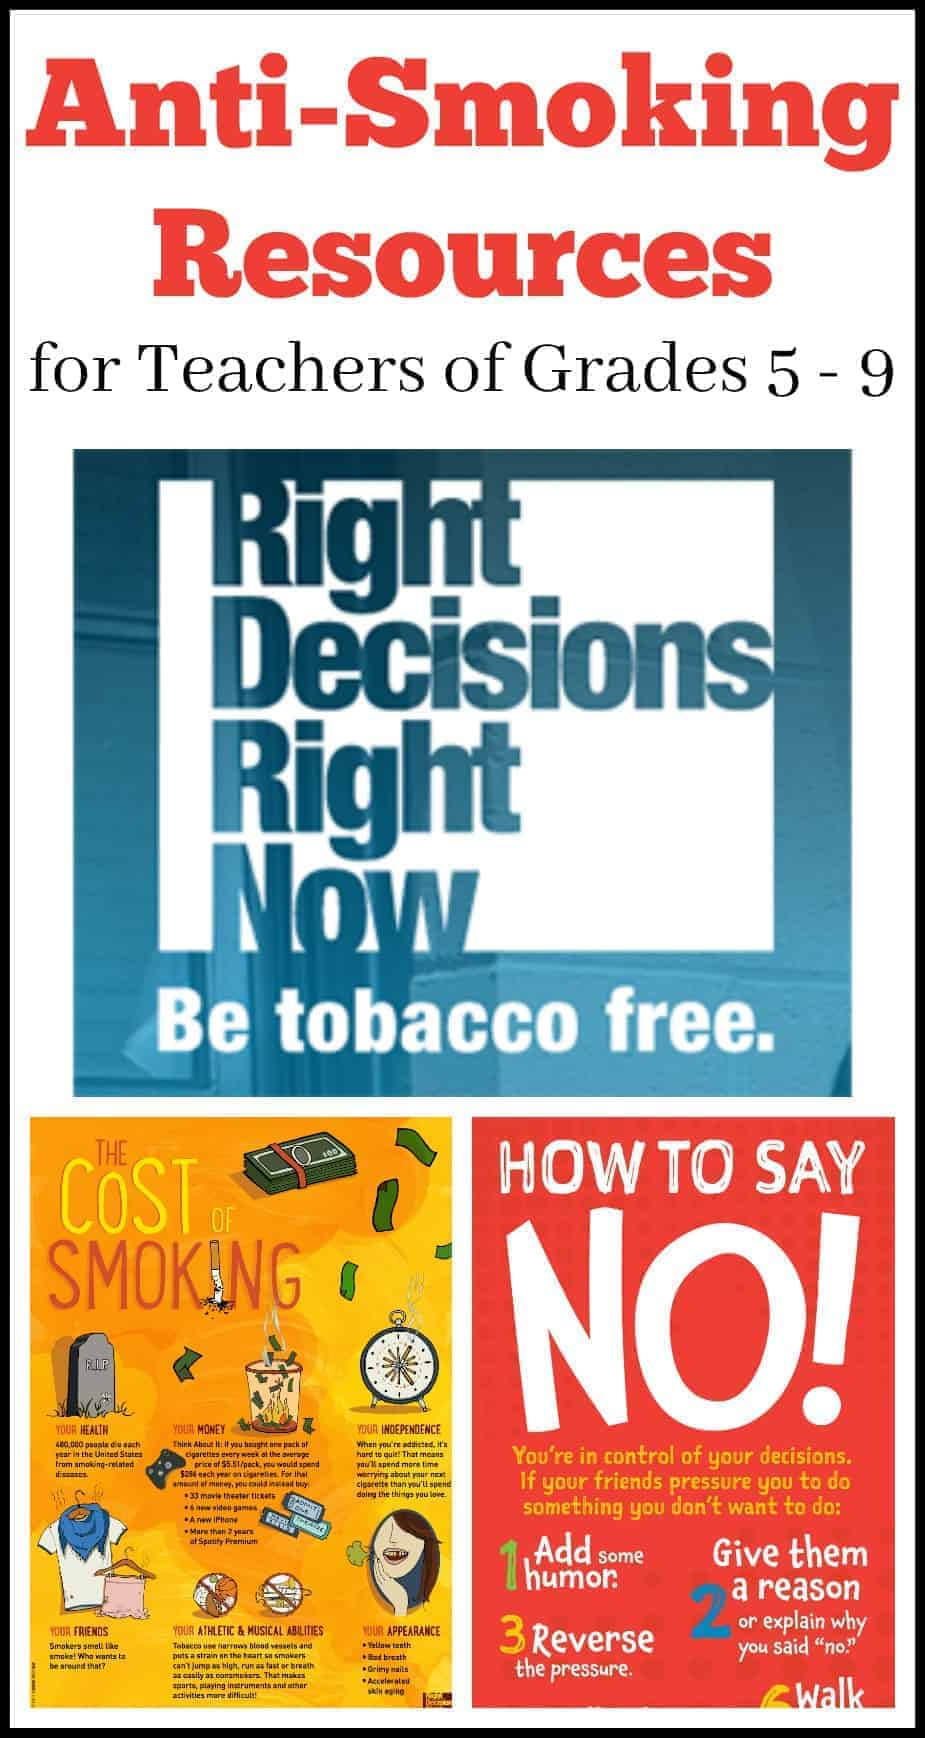 great anti-smoking resources for middle school teachers